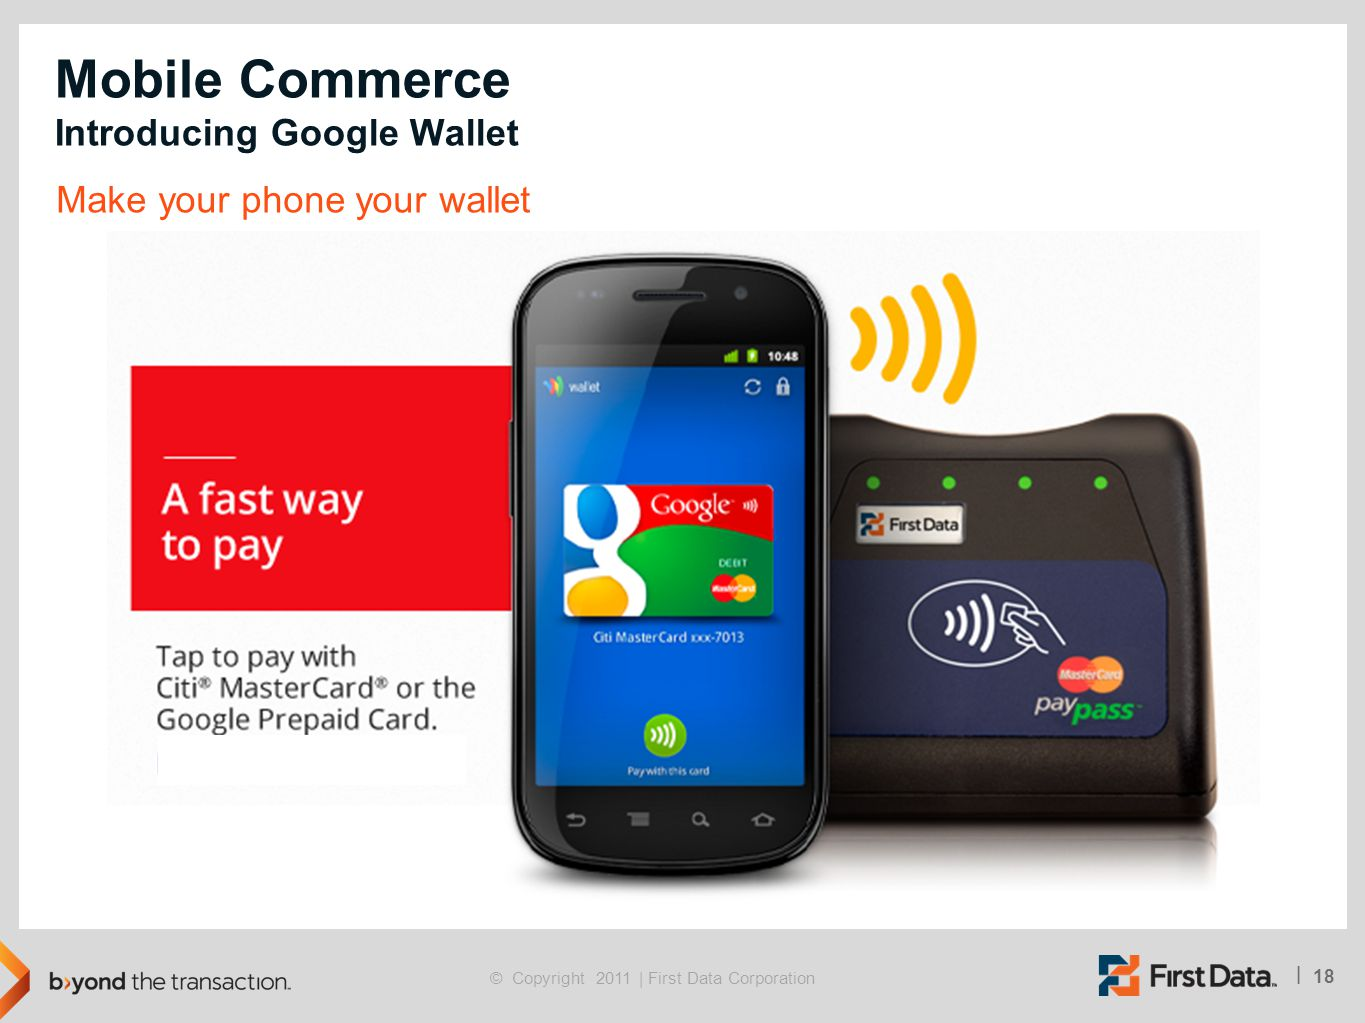 Mobile Commerce Introducing Google Wallet